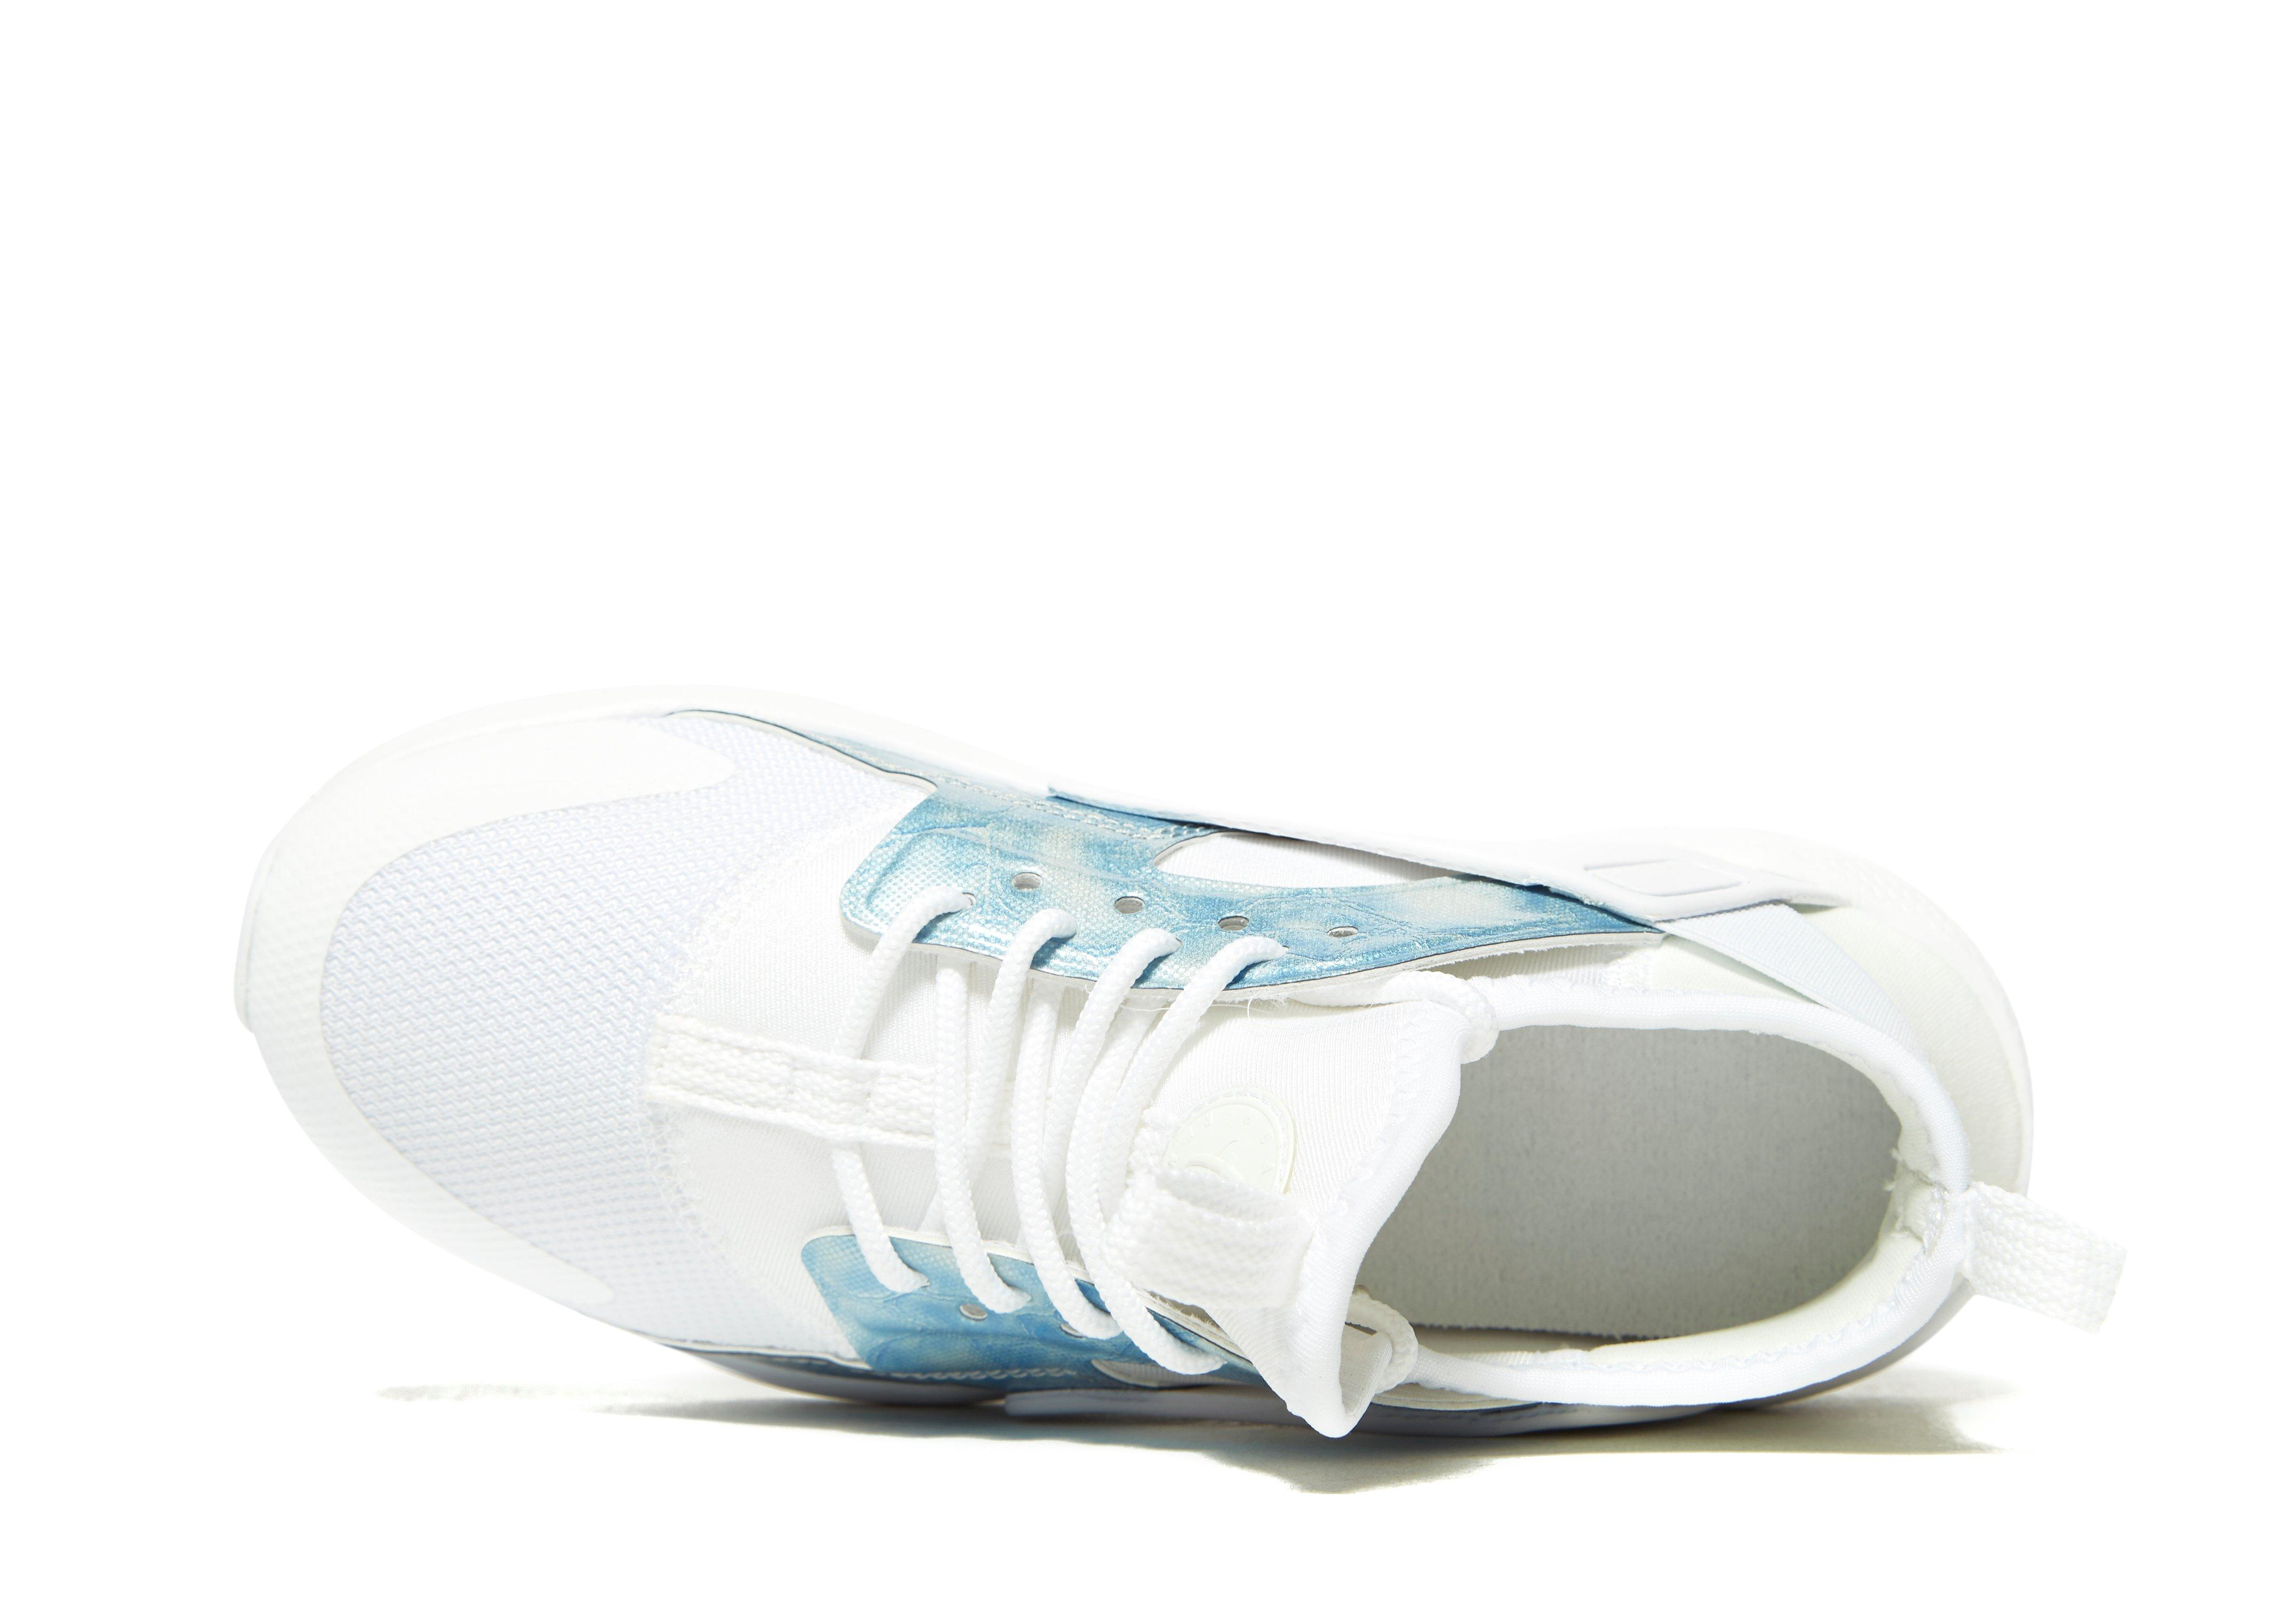 aa975d49b459e Indeed shoes designers are always taking up the challenge of designing the  most creative and comfortable shoes for women. Durability is also important.